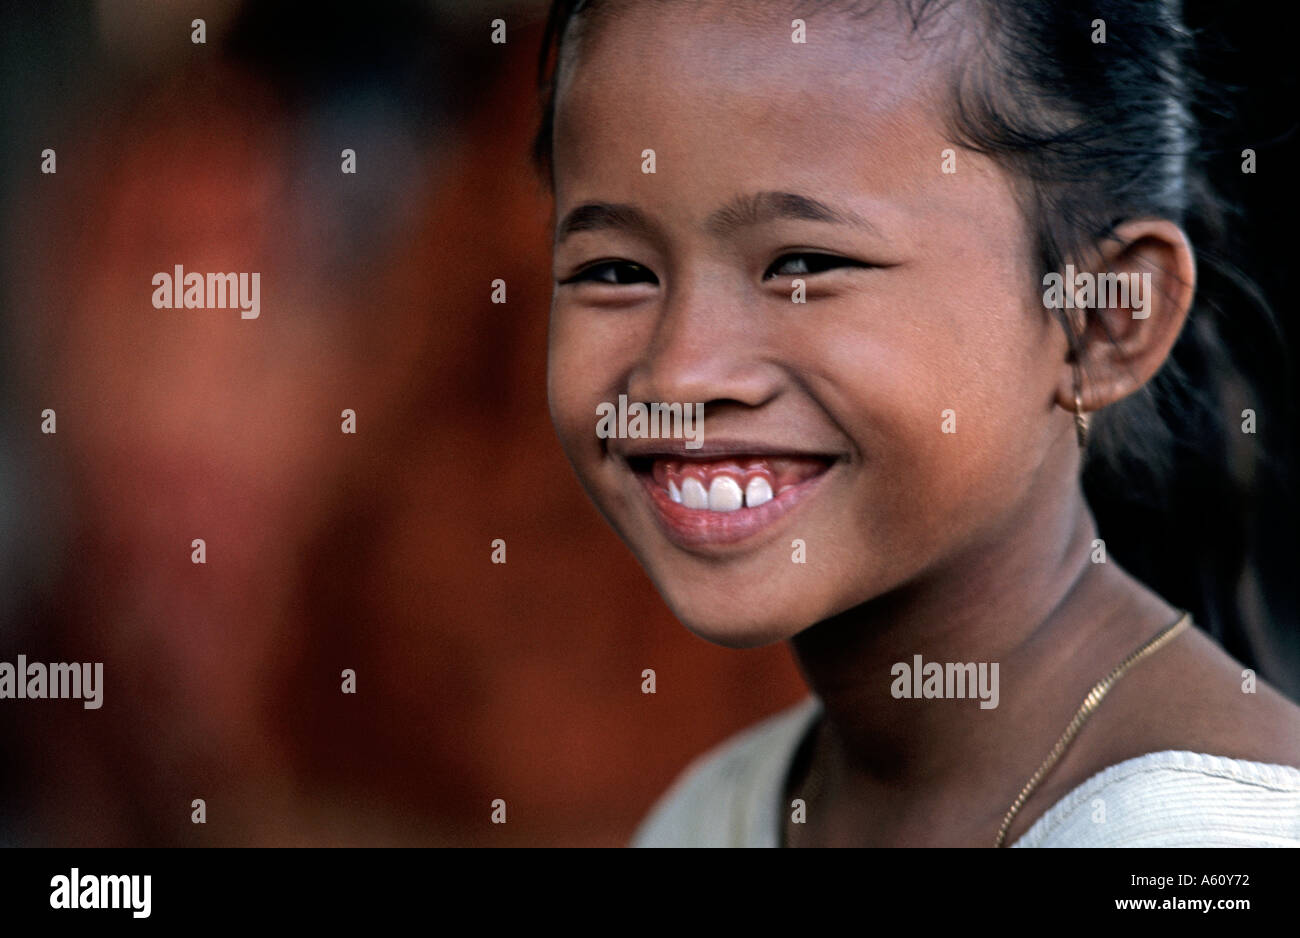 Balinese girl from the village of Amed at a community event Bali Indonesia - Stock Image